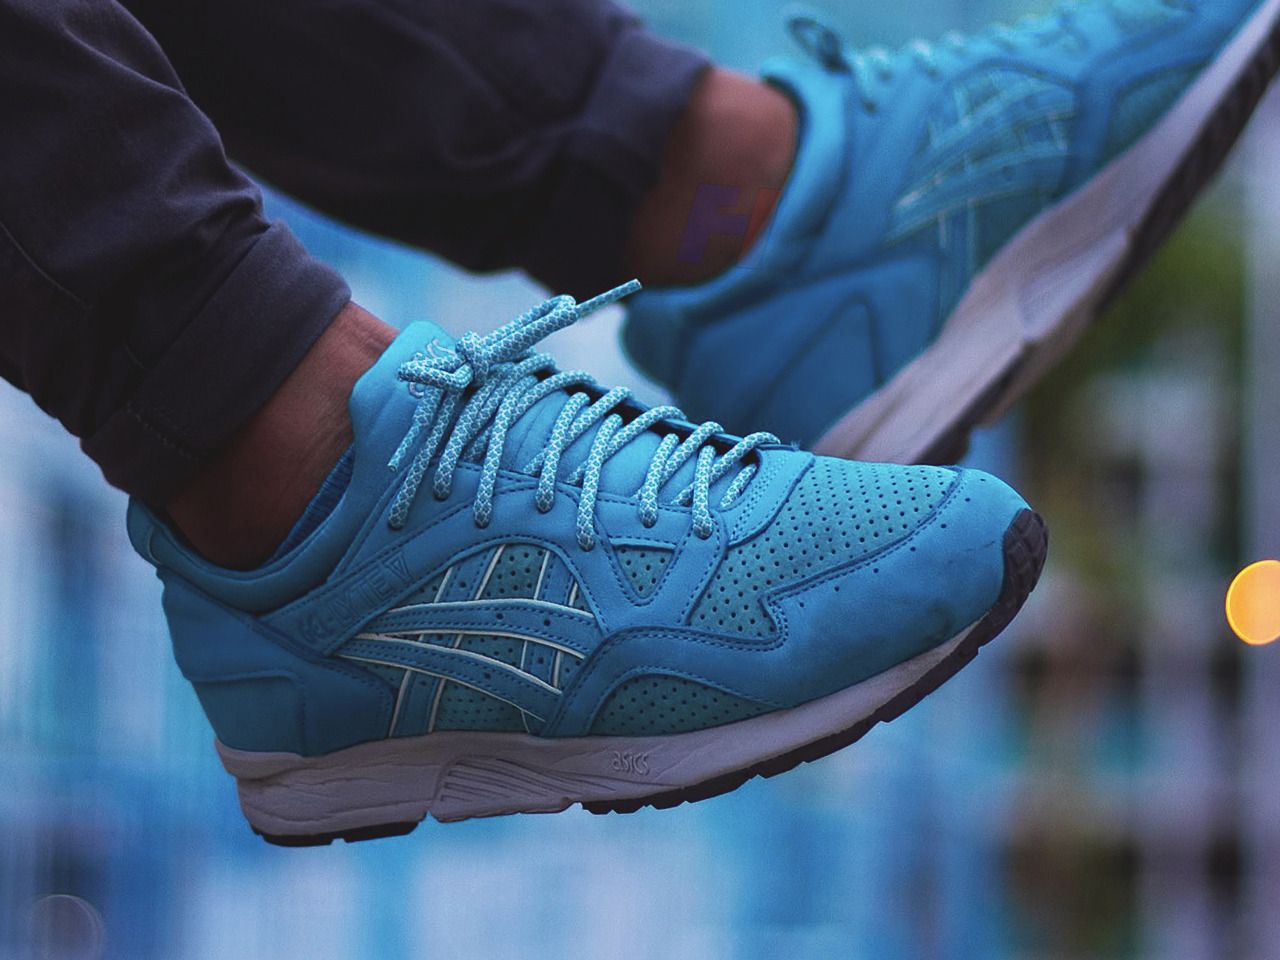 Pin By Elmau On Clothes Sneakers Fashion Asics Asics Gel Lyte